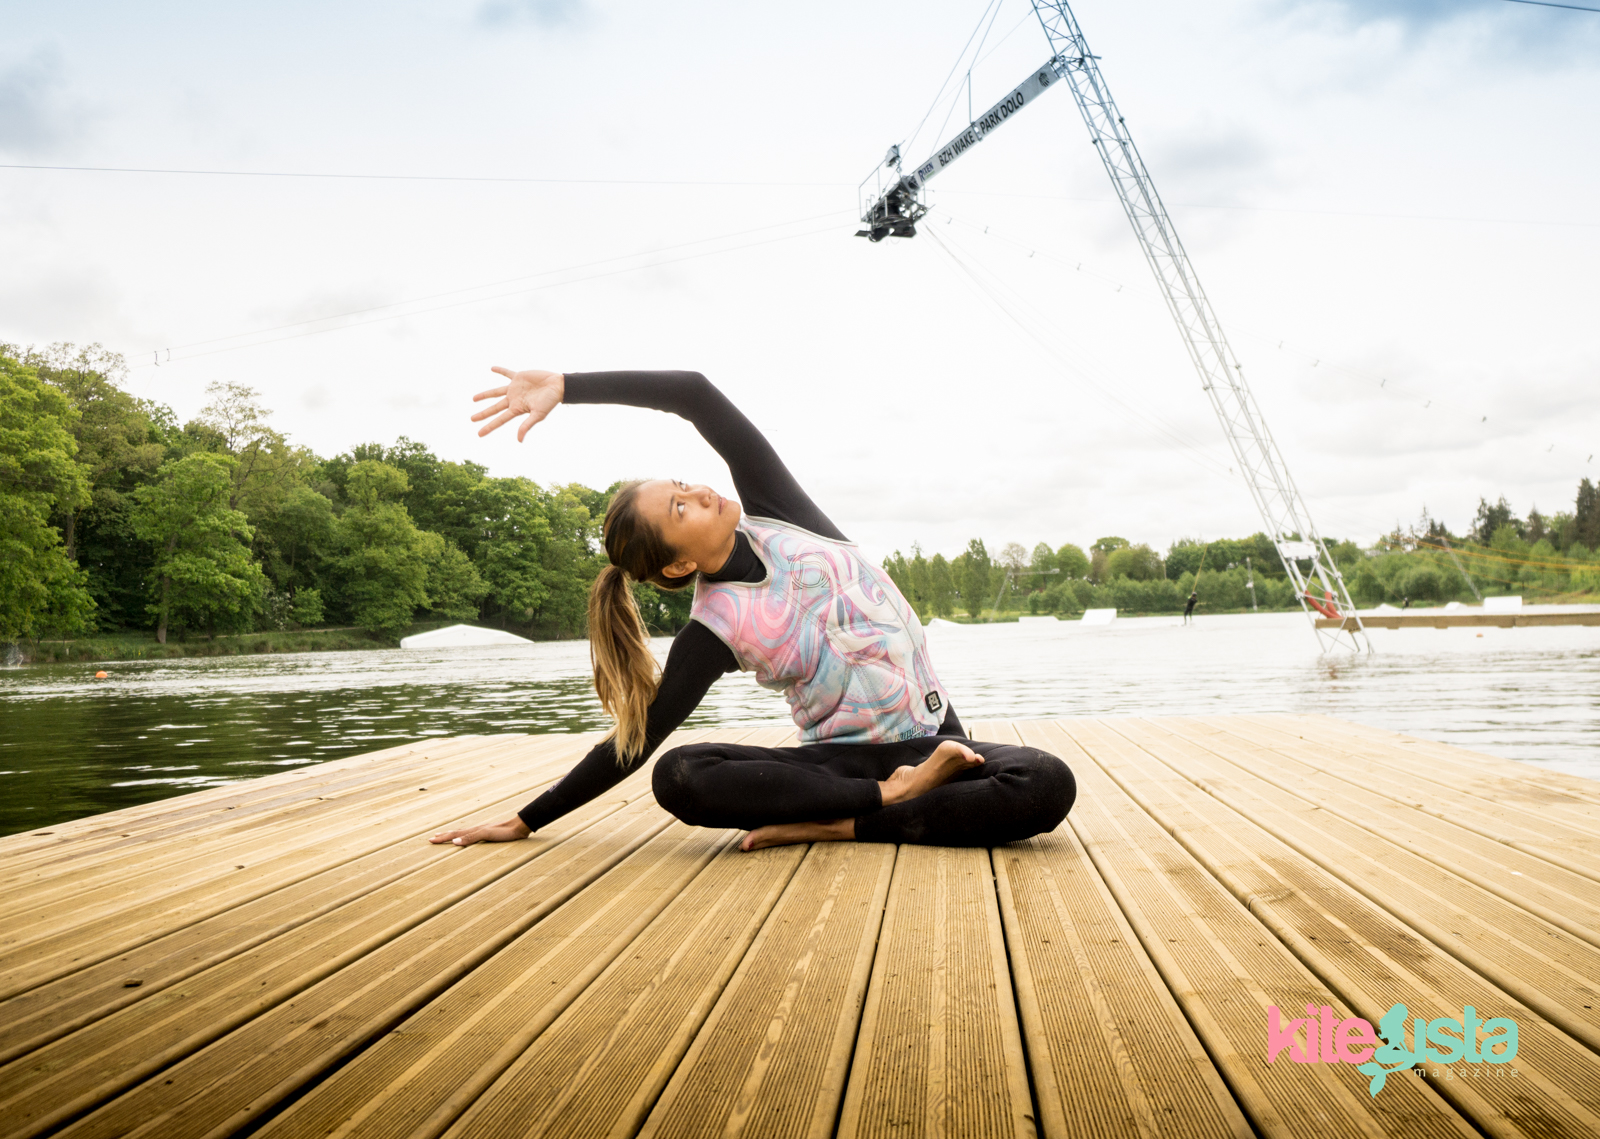 How to Stretch before a Session at the Cable park